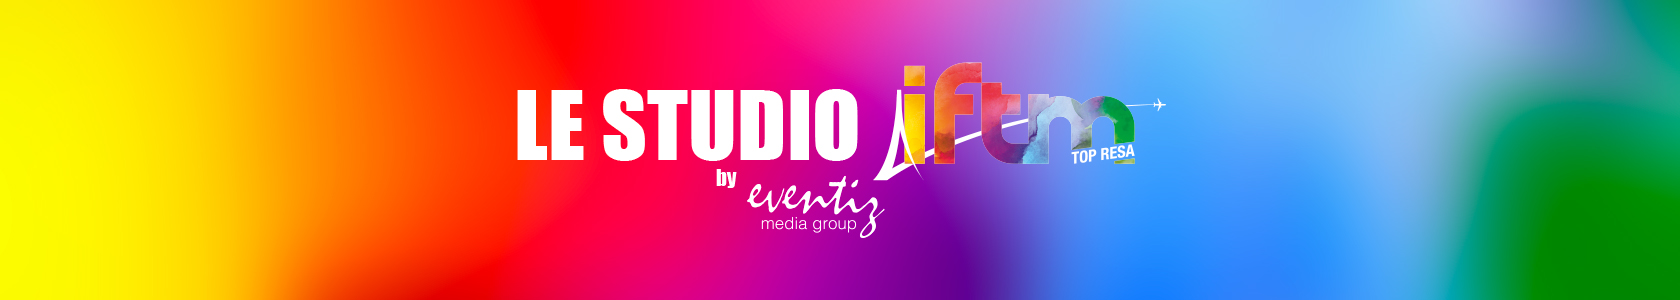 studio officiel IFTM by Eventiz Media Group